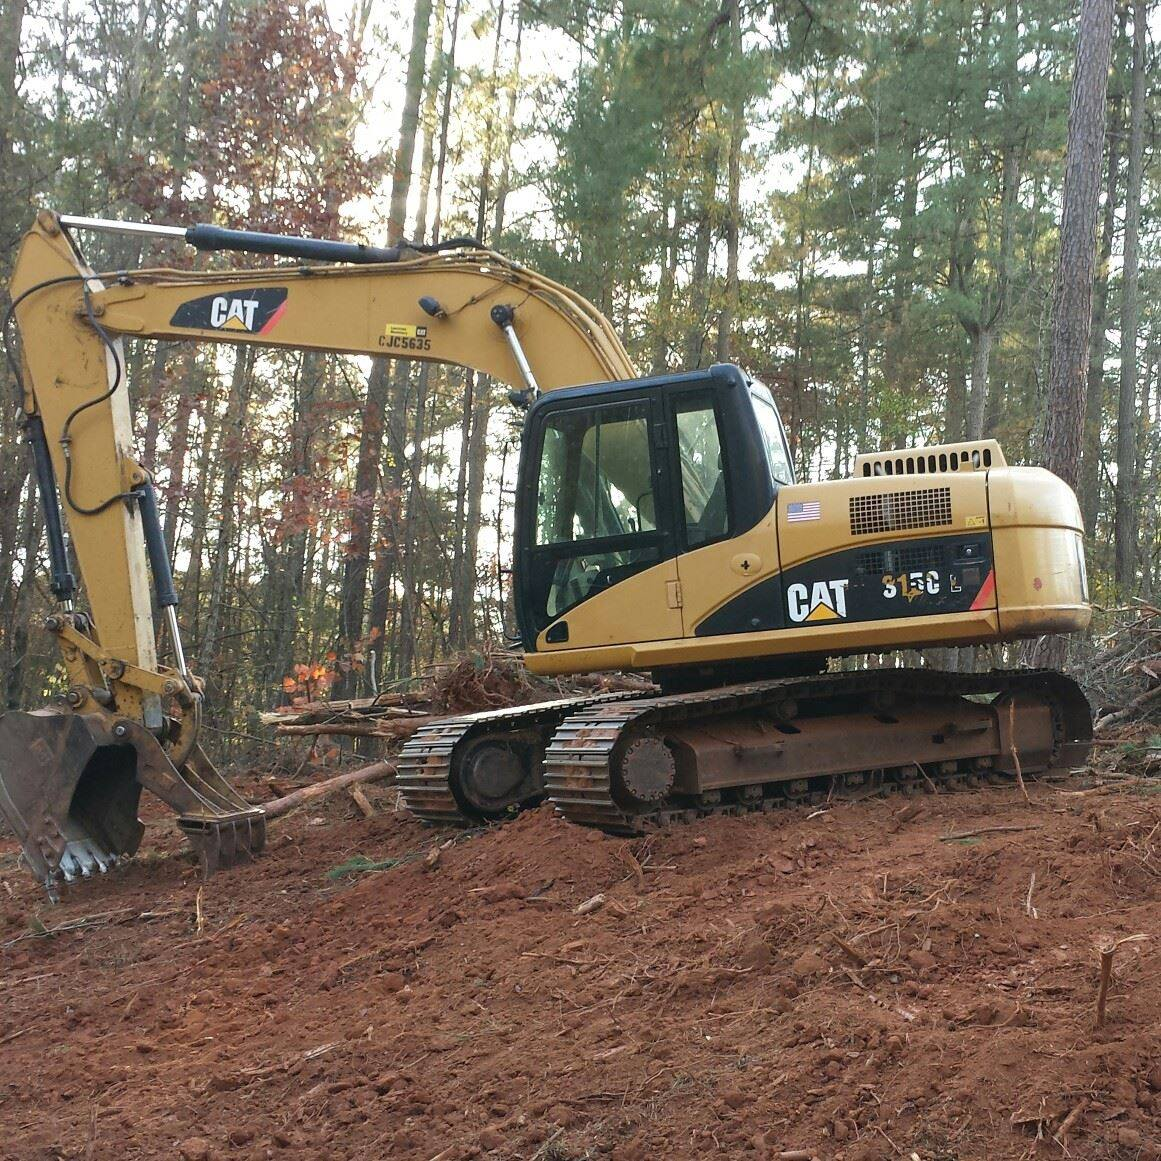 Left Hand Man - Caterpillar 351C specializing in demolition, excavating, and hauling.